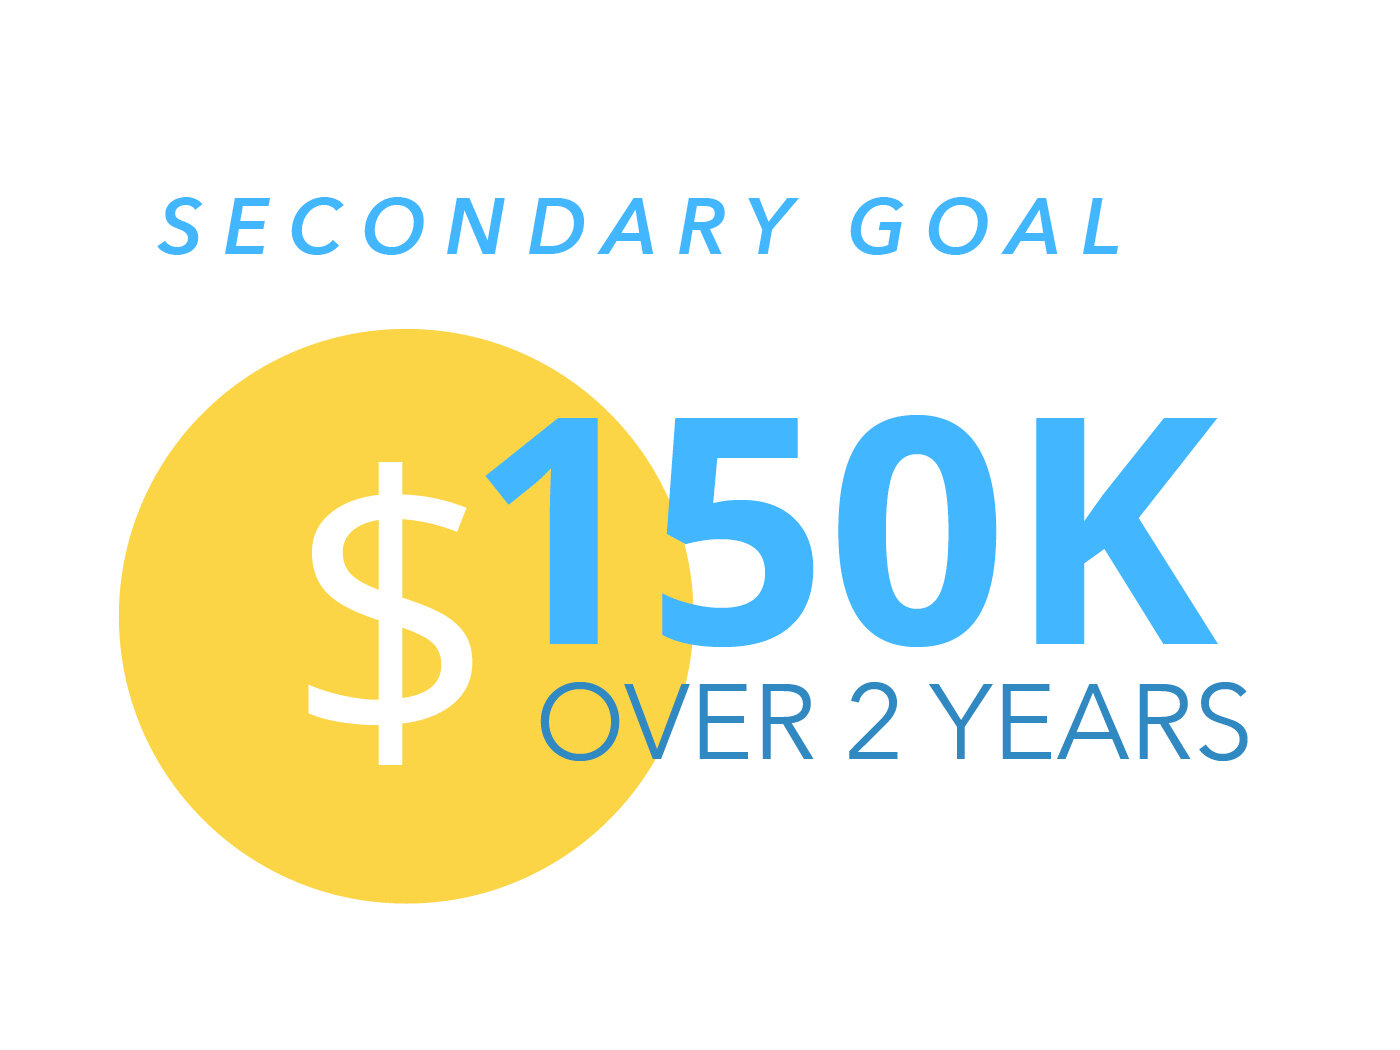 OUR SECONDARY GOAL  is $150,000 in generous giving over the next two years towards the purchase and renovation of our new location. This goal is divided into a $50,000 cash offering on Victory Sunday, October 27, and $100,000 of pledged giving over the next two years.